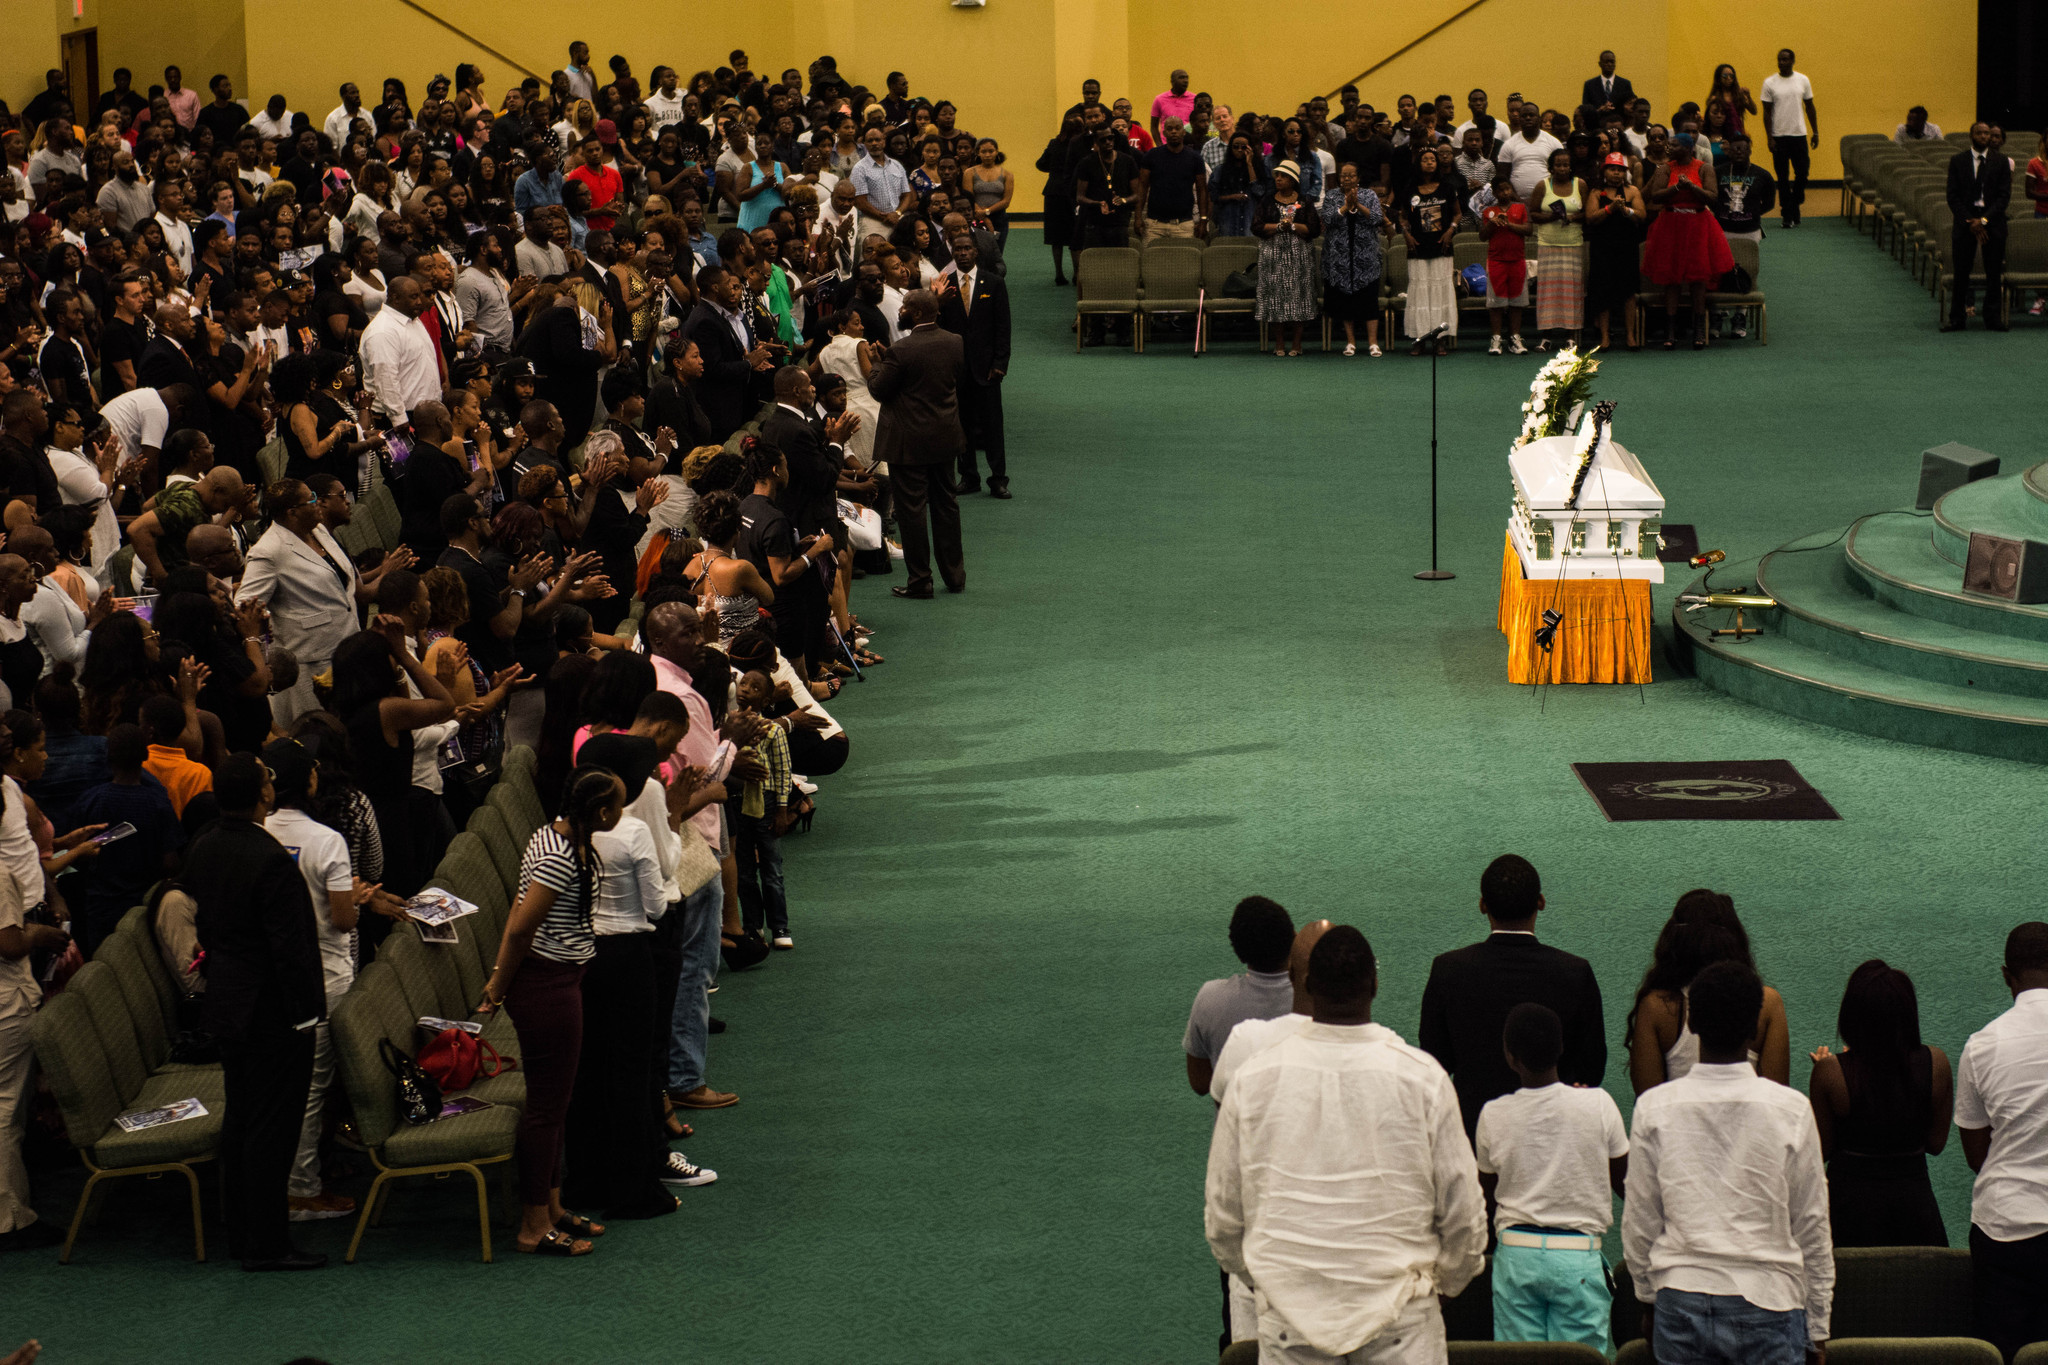 Hundreds Attend Funeral For Hood Poet Lor Scoota